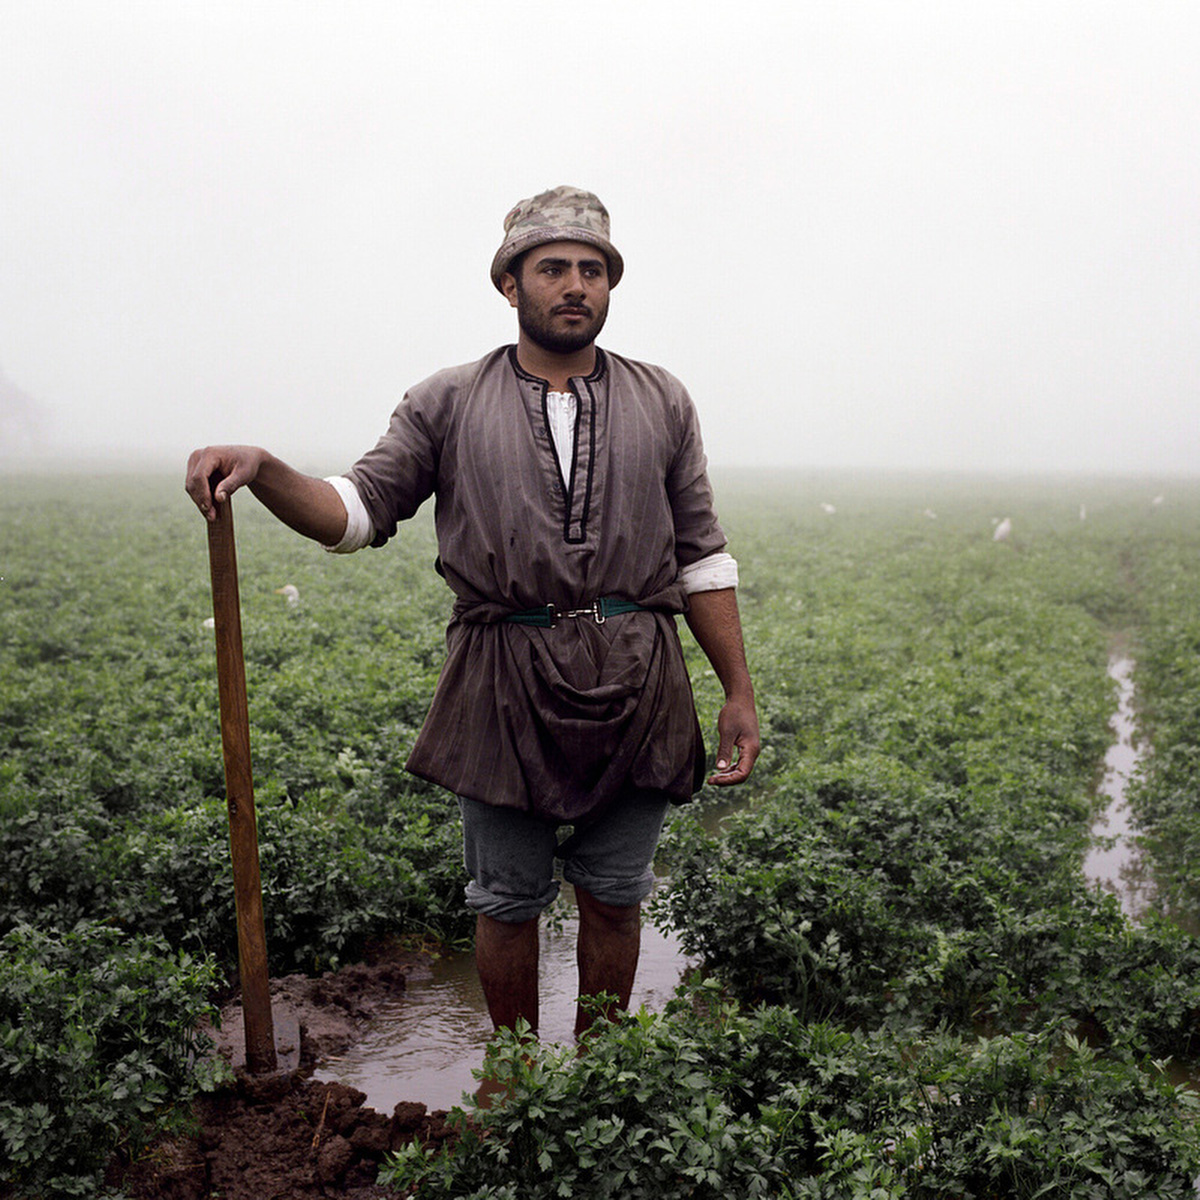 Mohamed, 25, is one of the youngest farmers working along these fields. He rents the land and makes a cut from the profit.